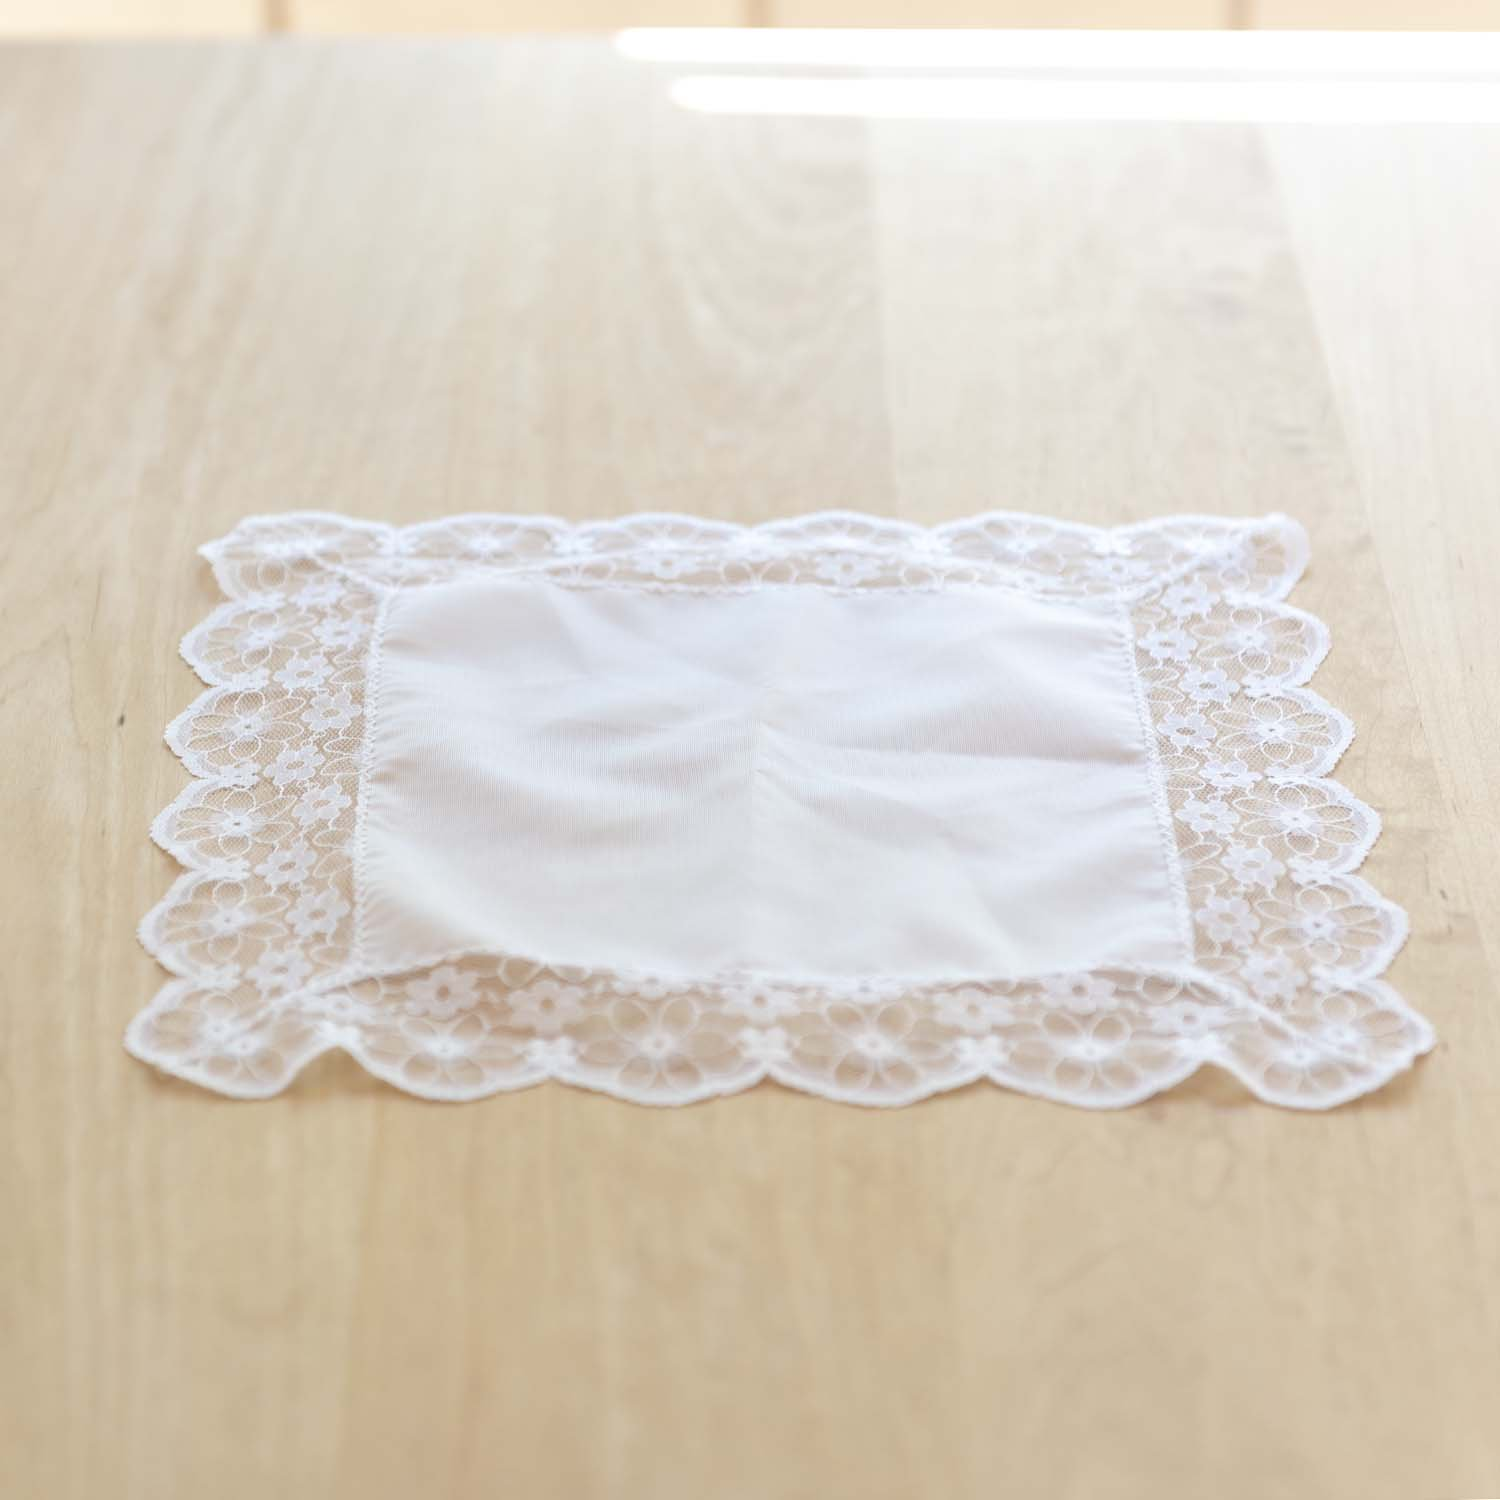 <img class='new_mark_img1' src='https://img.shop-pro.jp/img/new/icons3.gif' style='border:none;display:inline;margin:0px;padding:0px;width:auto;' />Race Flower Place Mat B